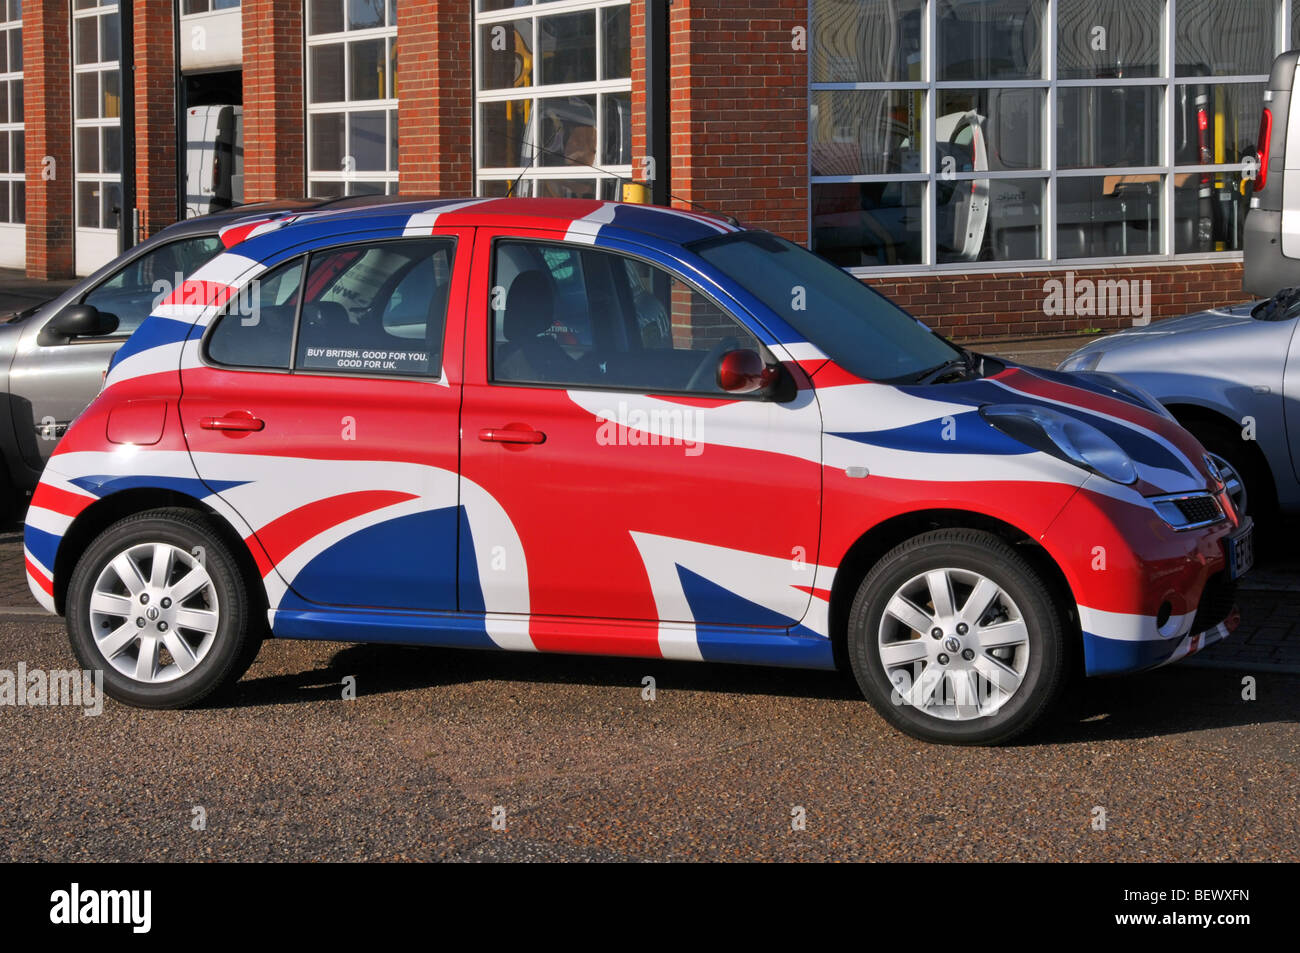 Nissan micra car with union flag graphics as part of a Buy British marketing campaign for the Sunderland factory - Stock Image